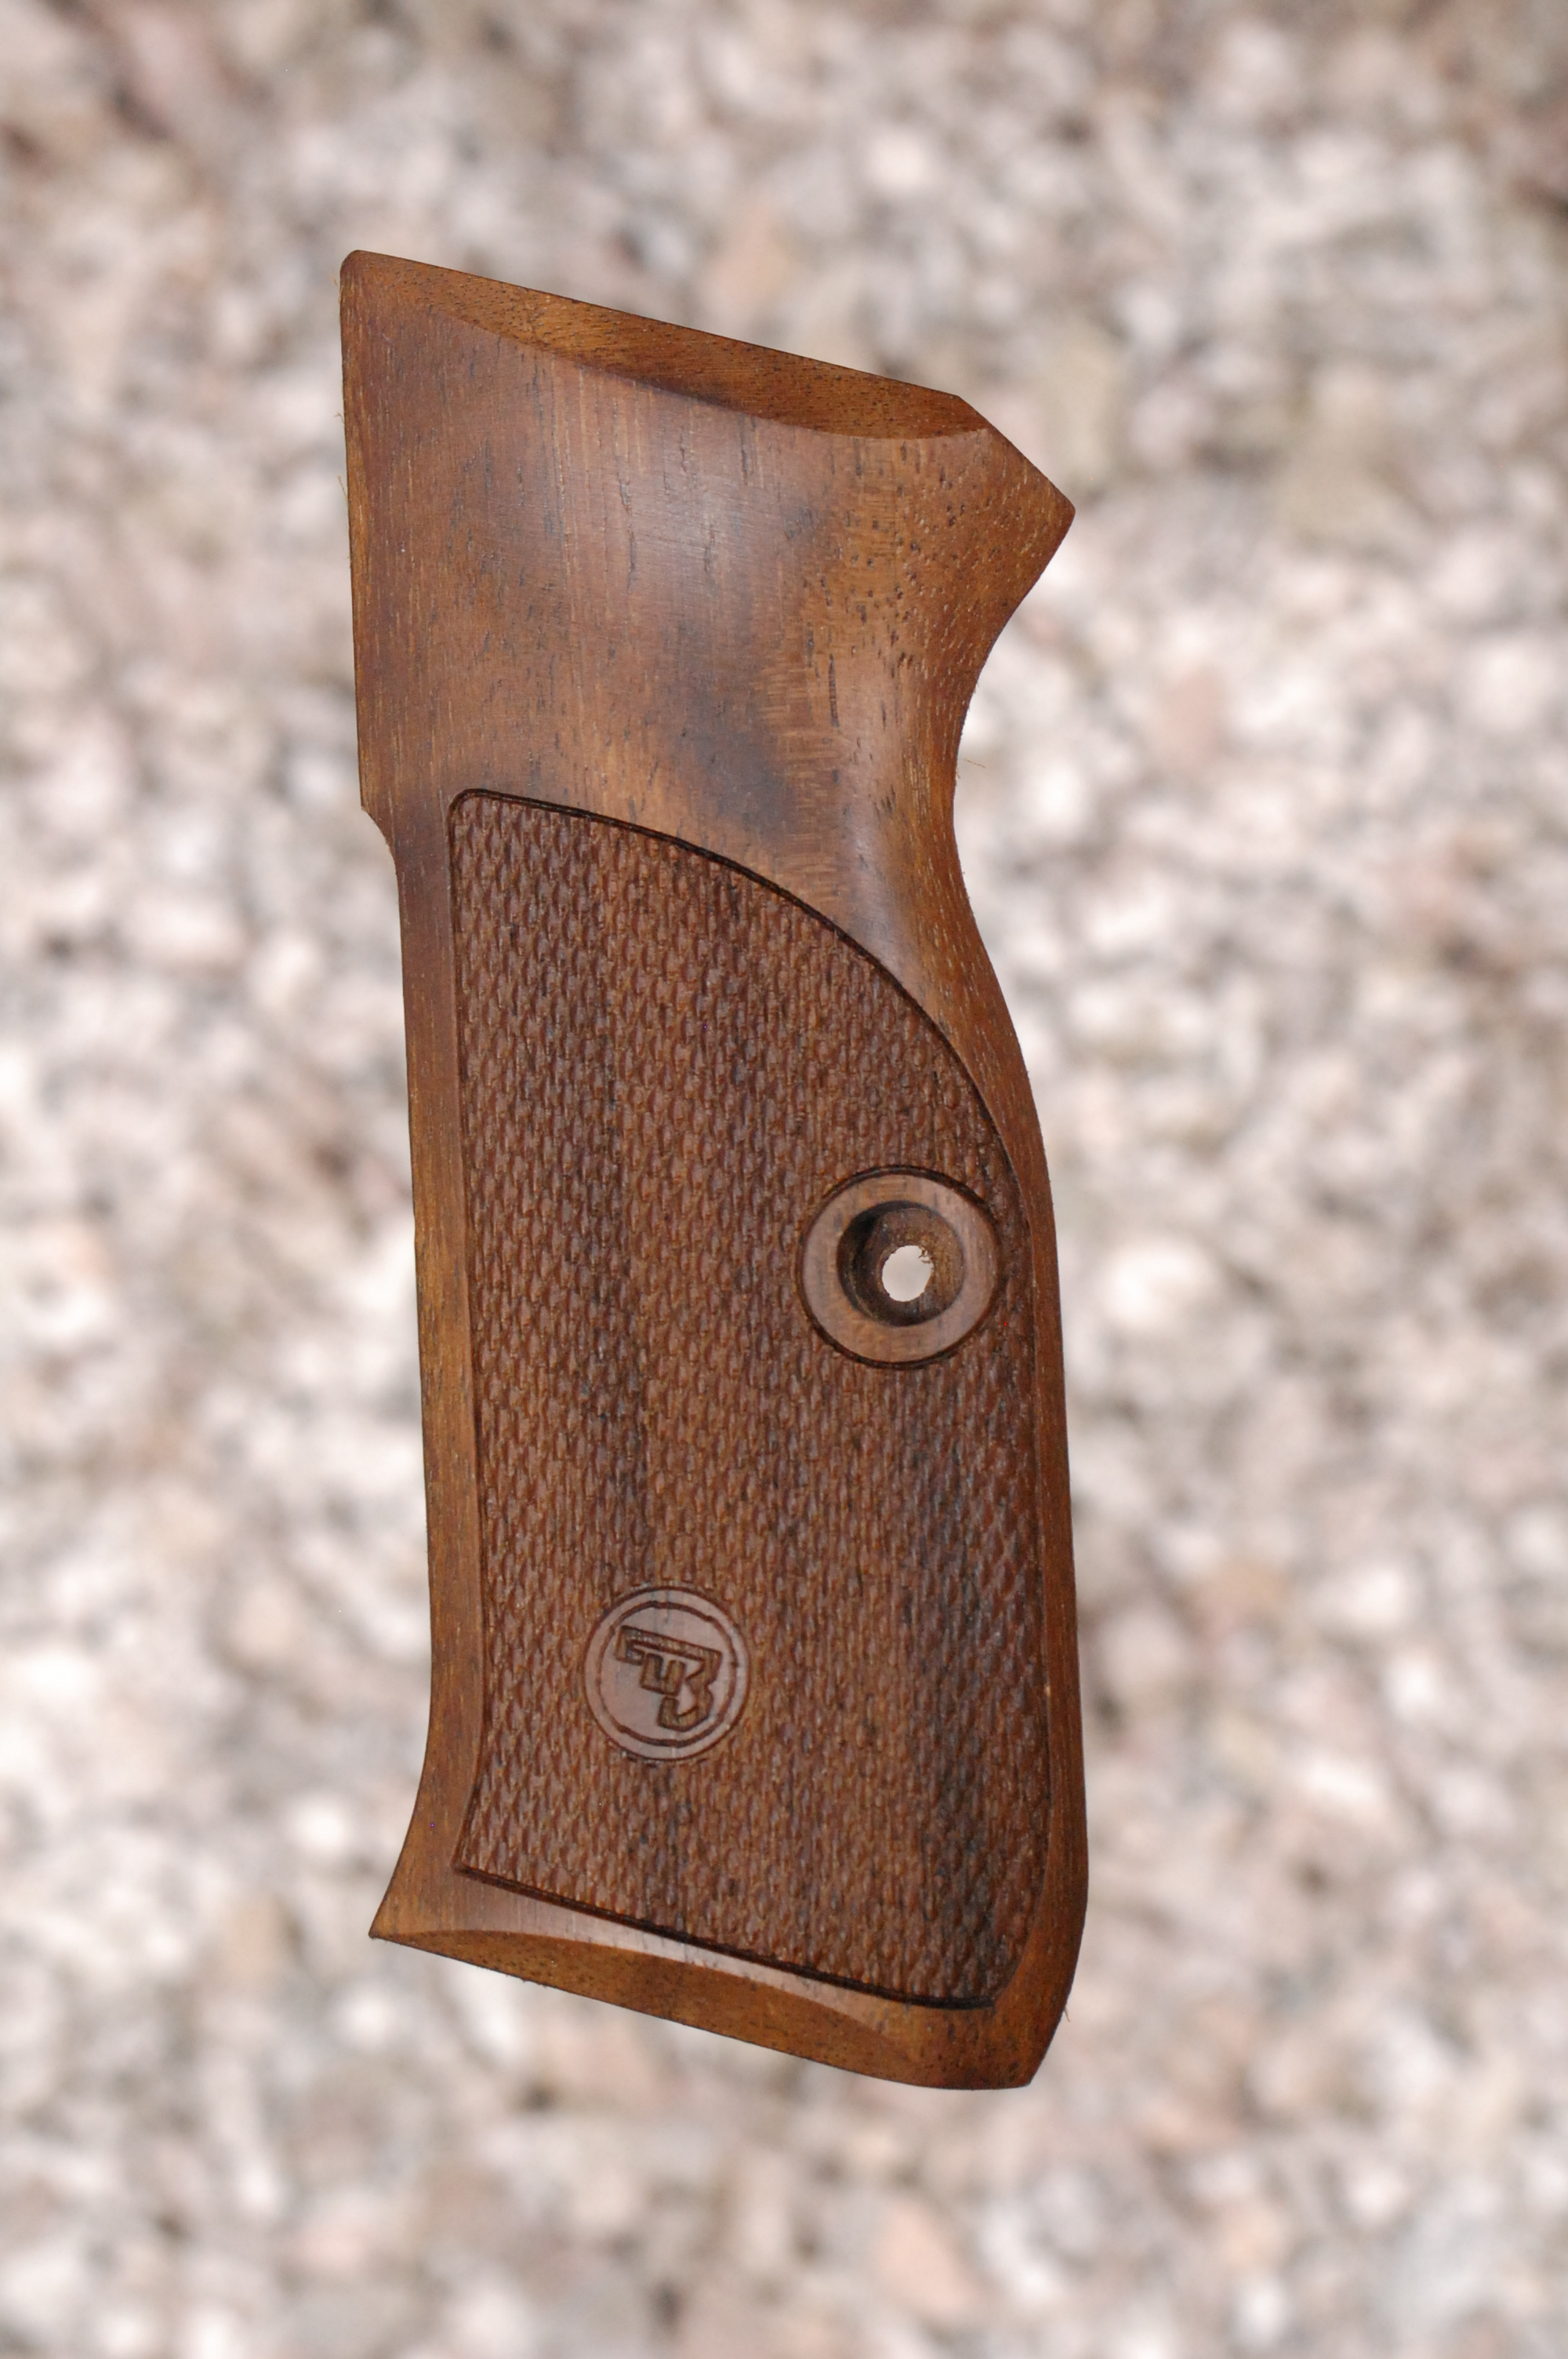 CZ 75 GRIPS type 4 (checkered) - full size